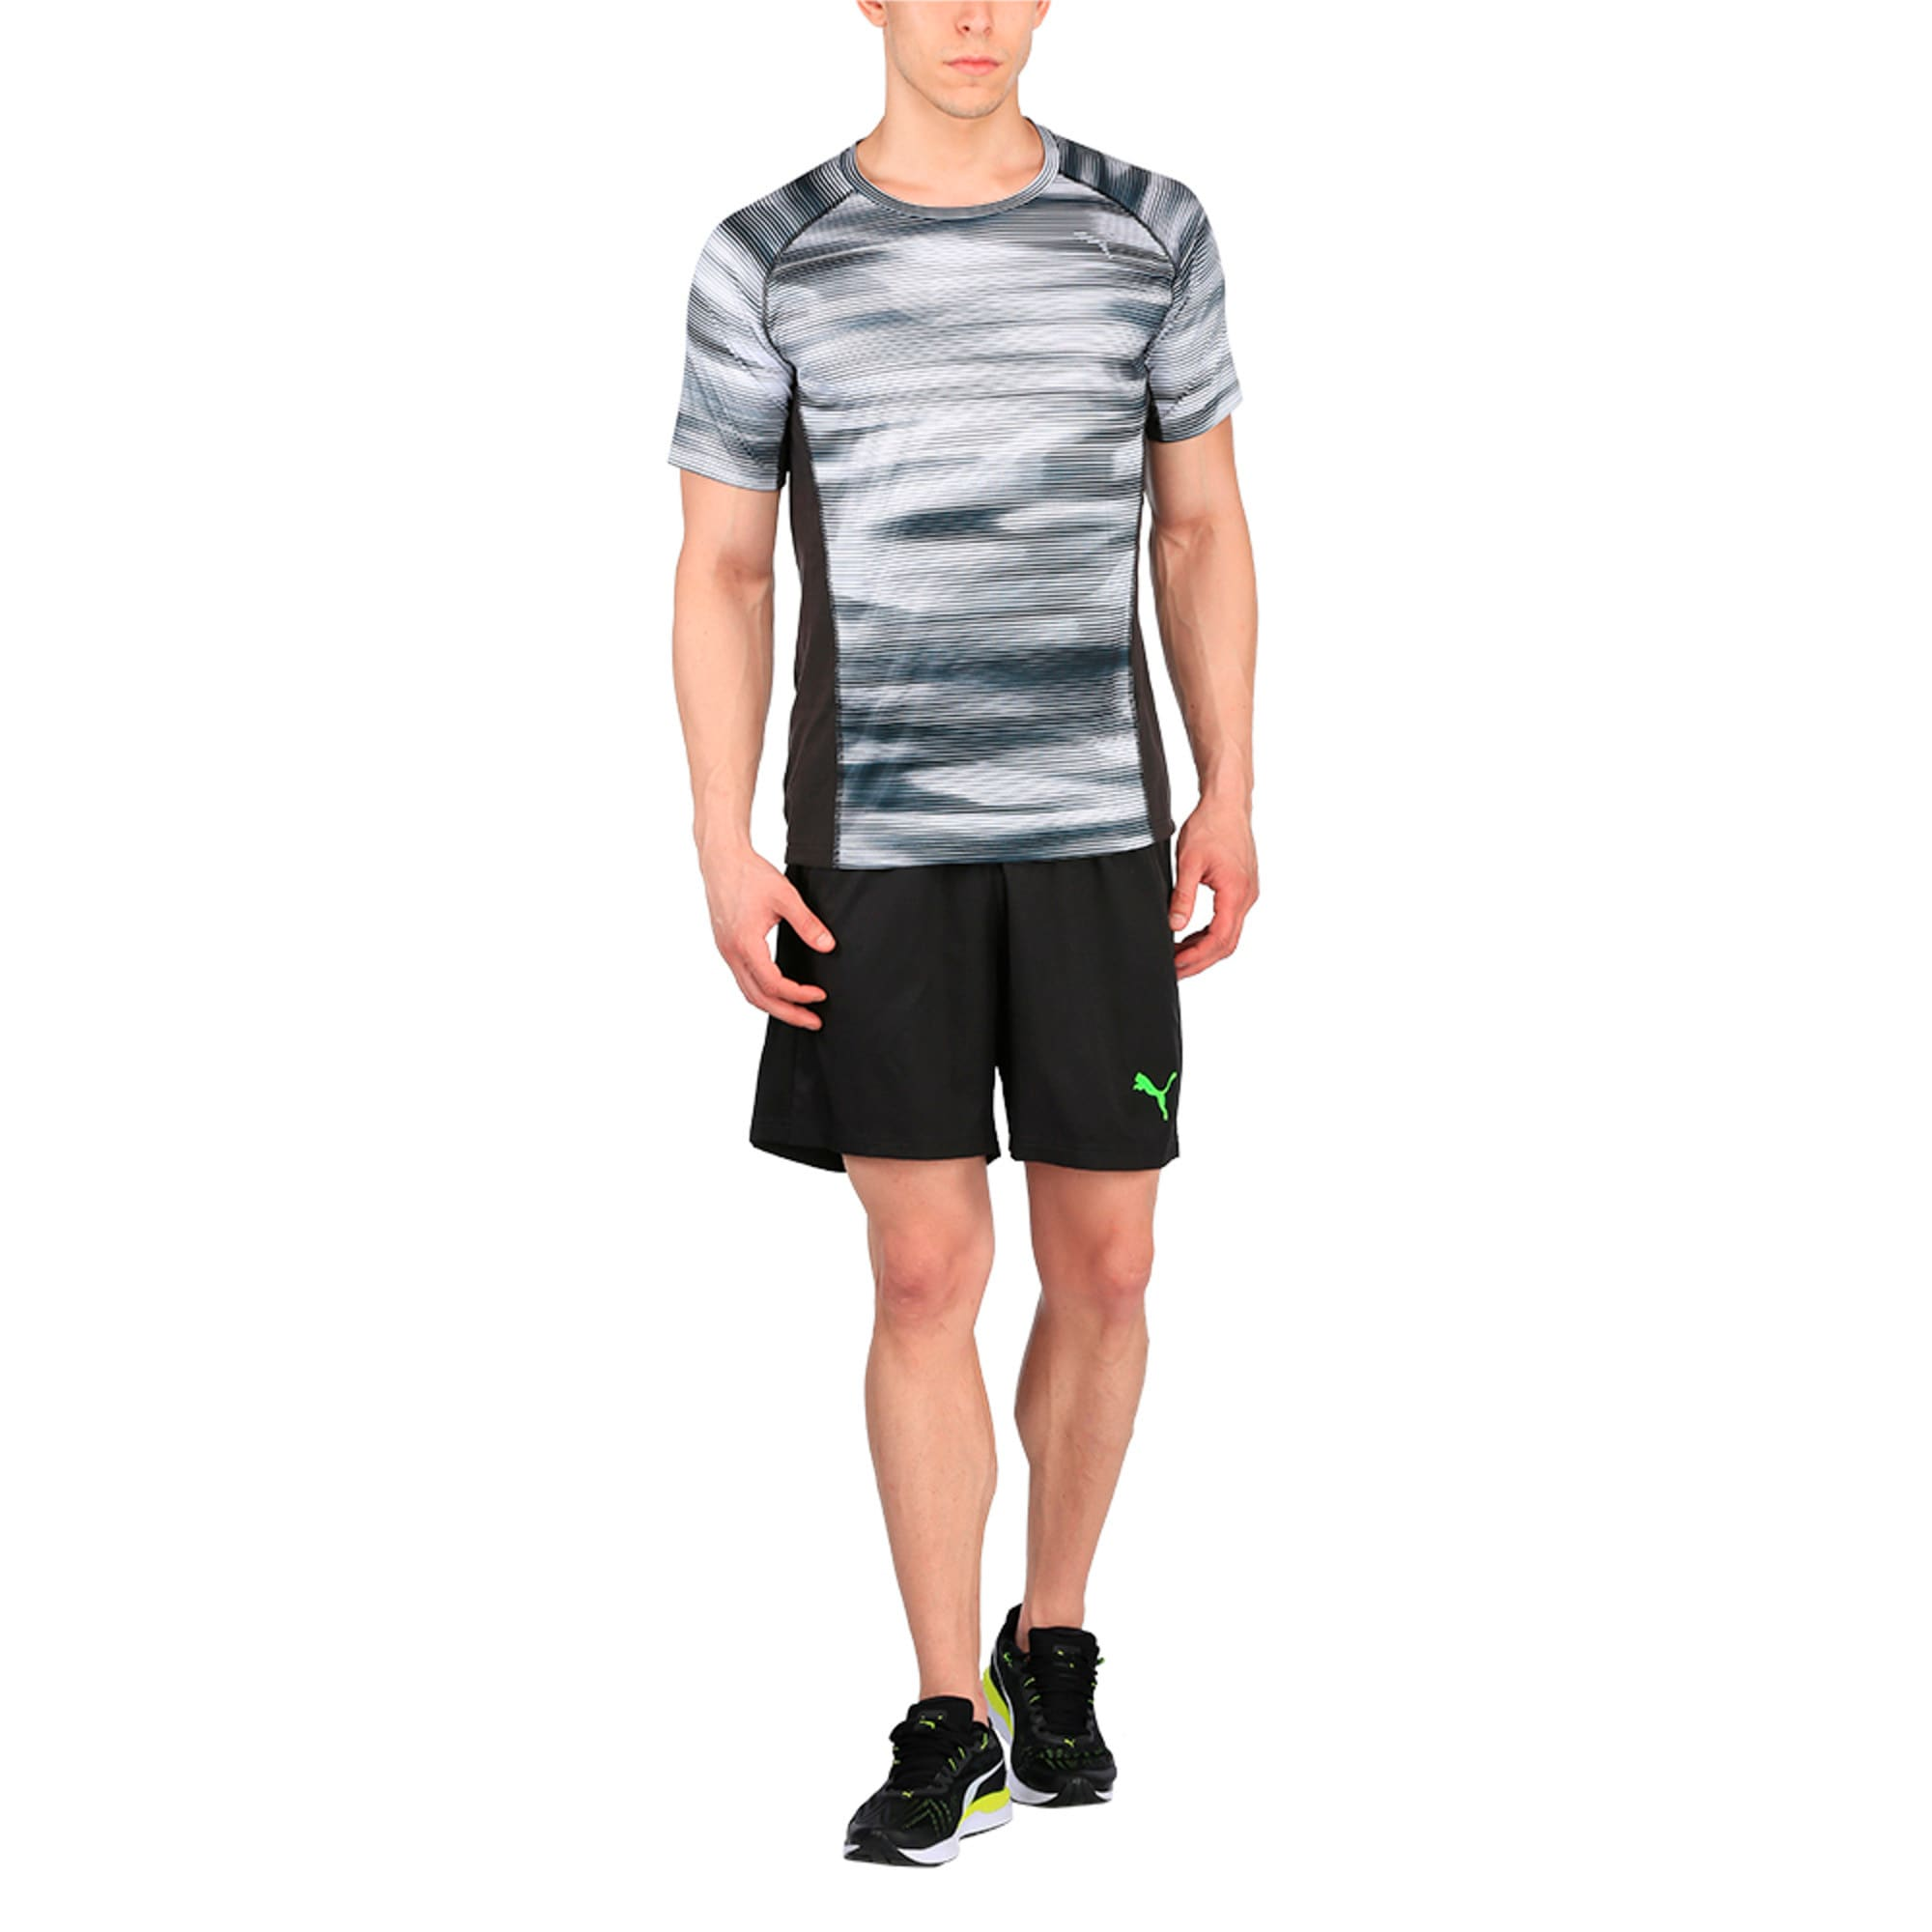 Thumbnail 4 of Running Men's Graphic T-Shirt, Puma Black Heather, medium-IND